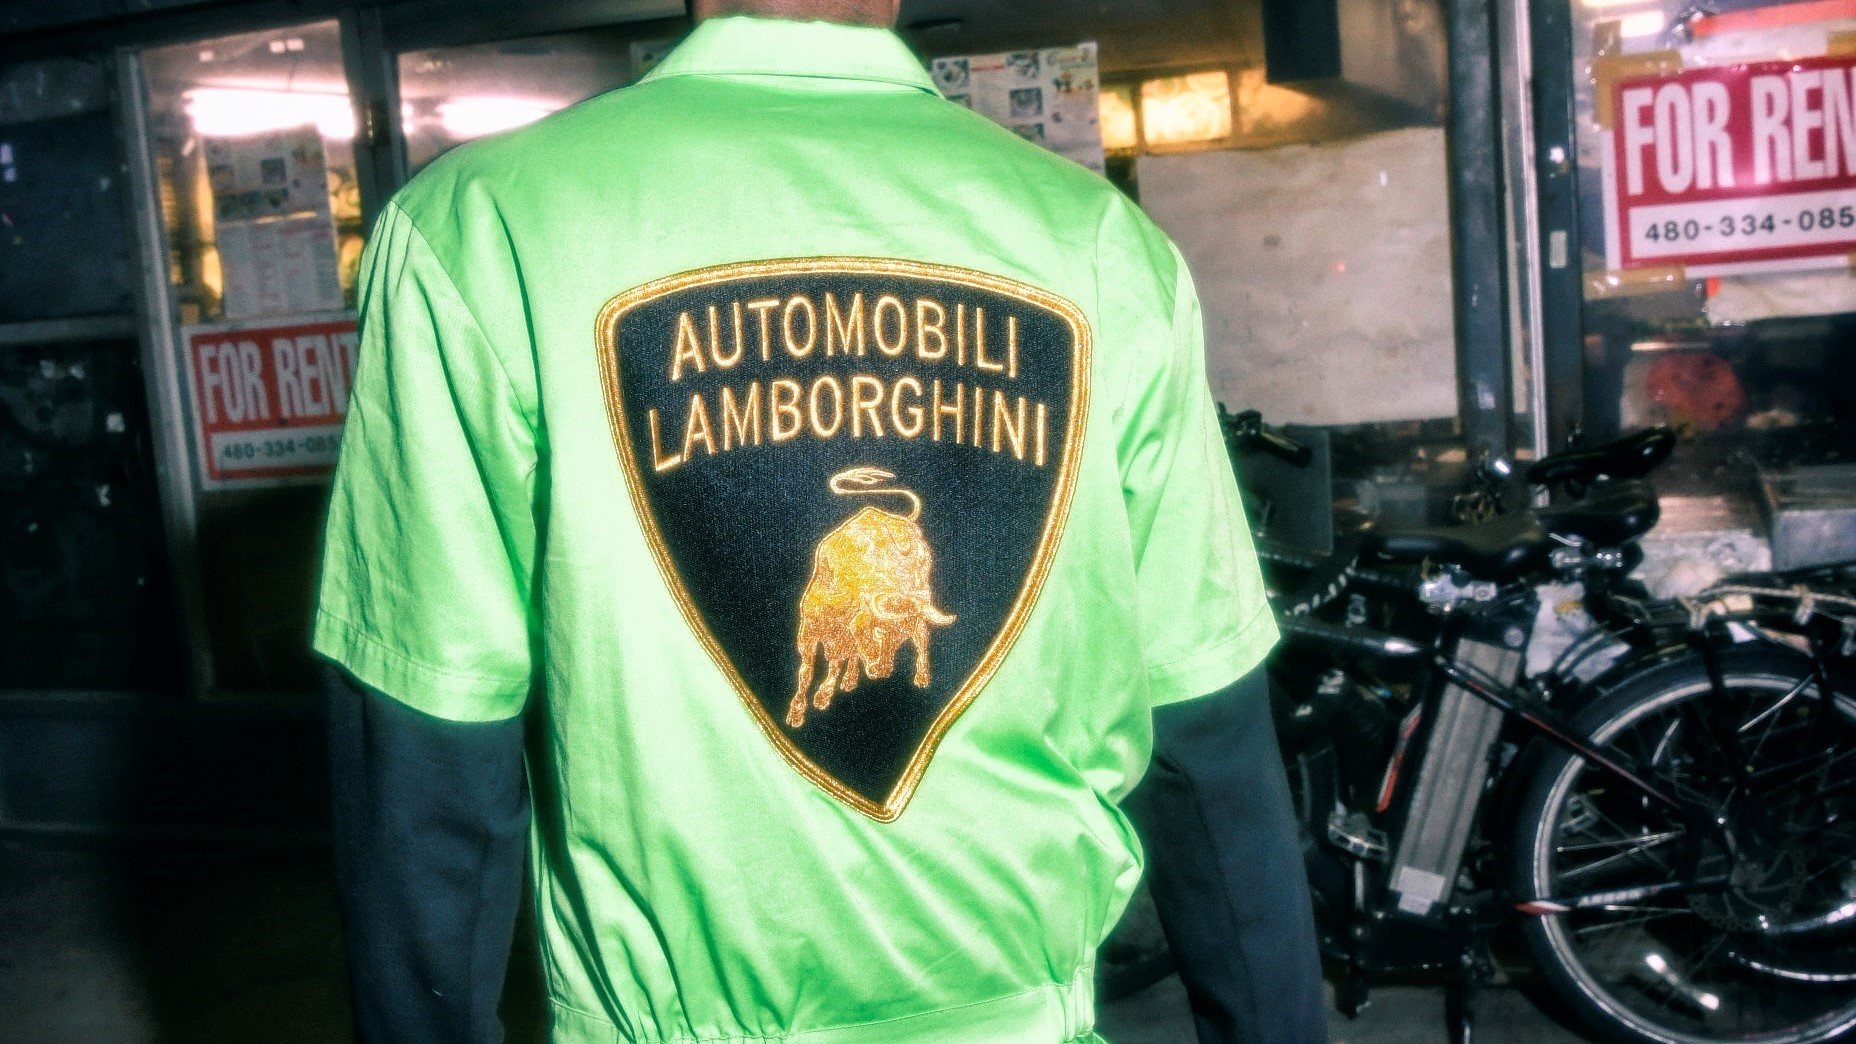 Automobili Lamborghini and Supreme come together on a new collection for Spring-Summer 2020 - Image 7